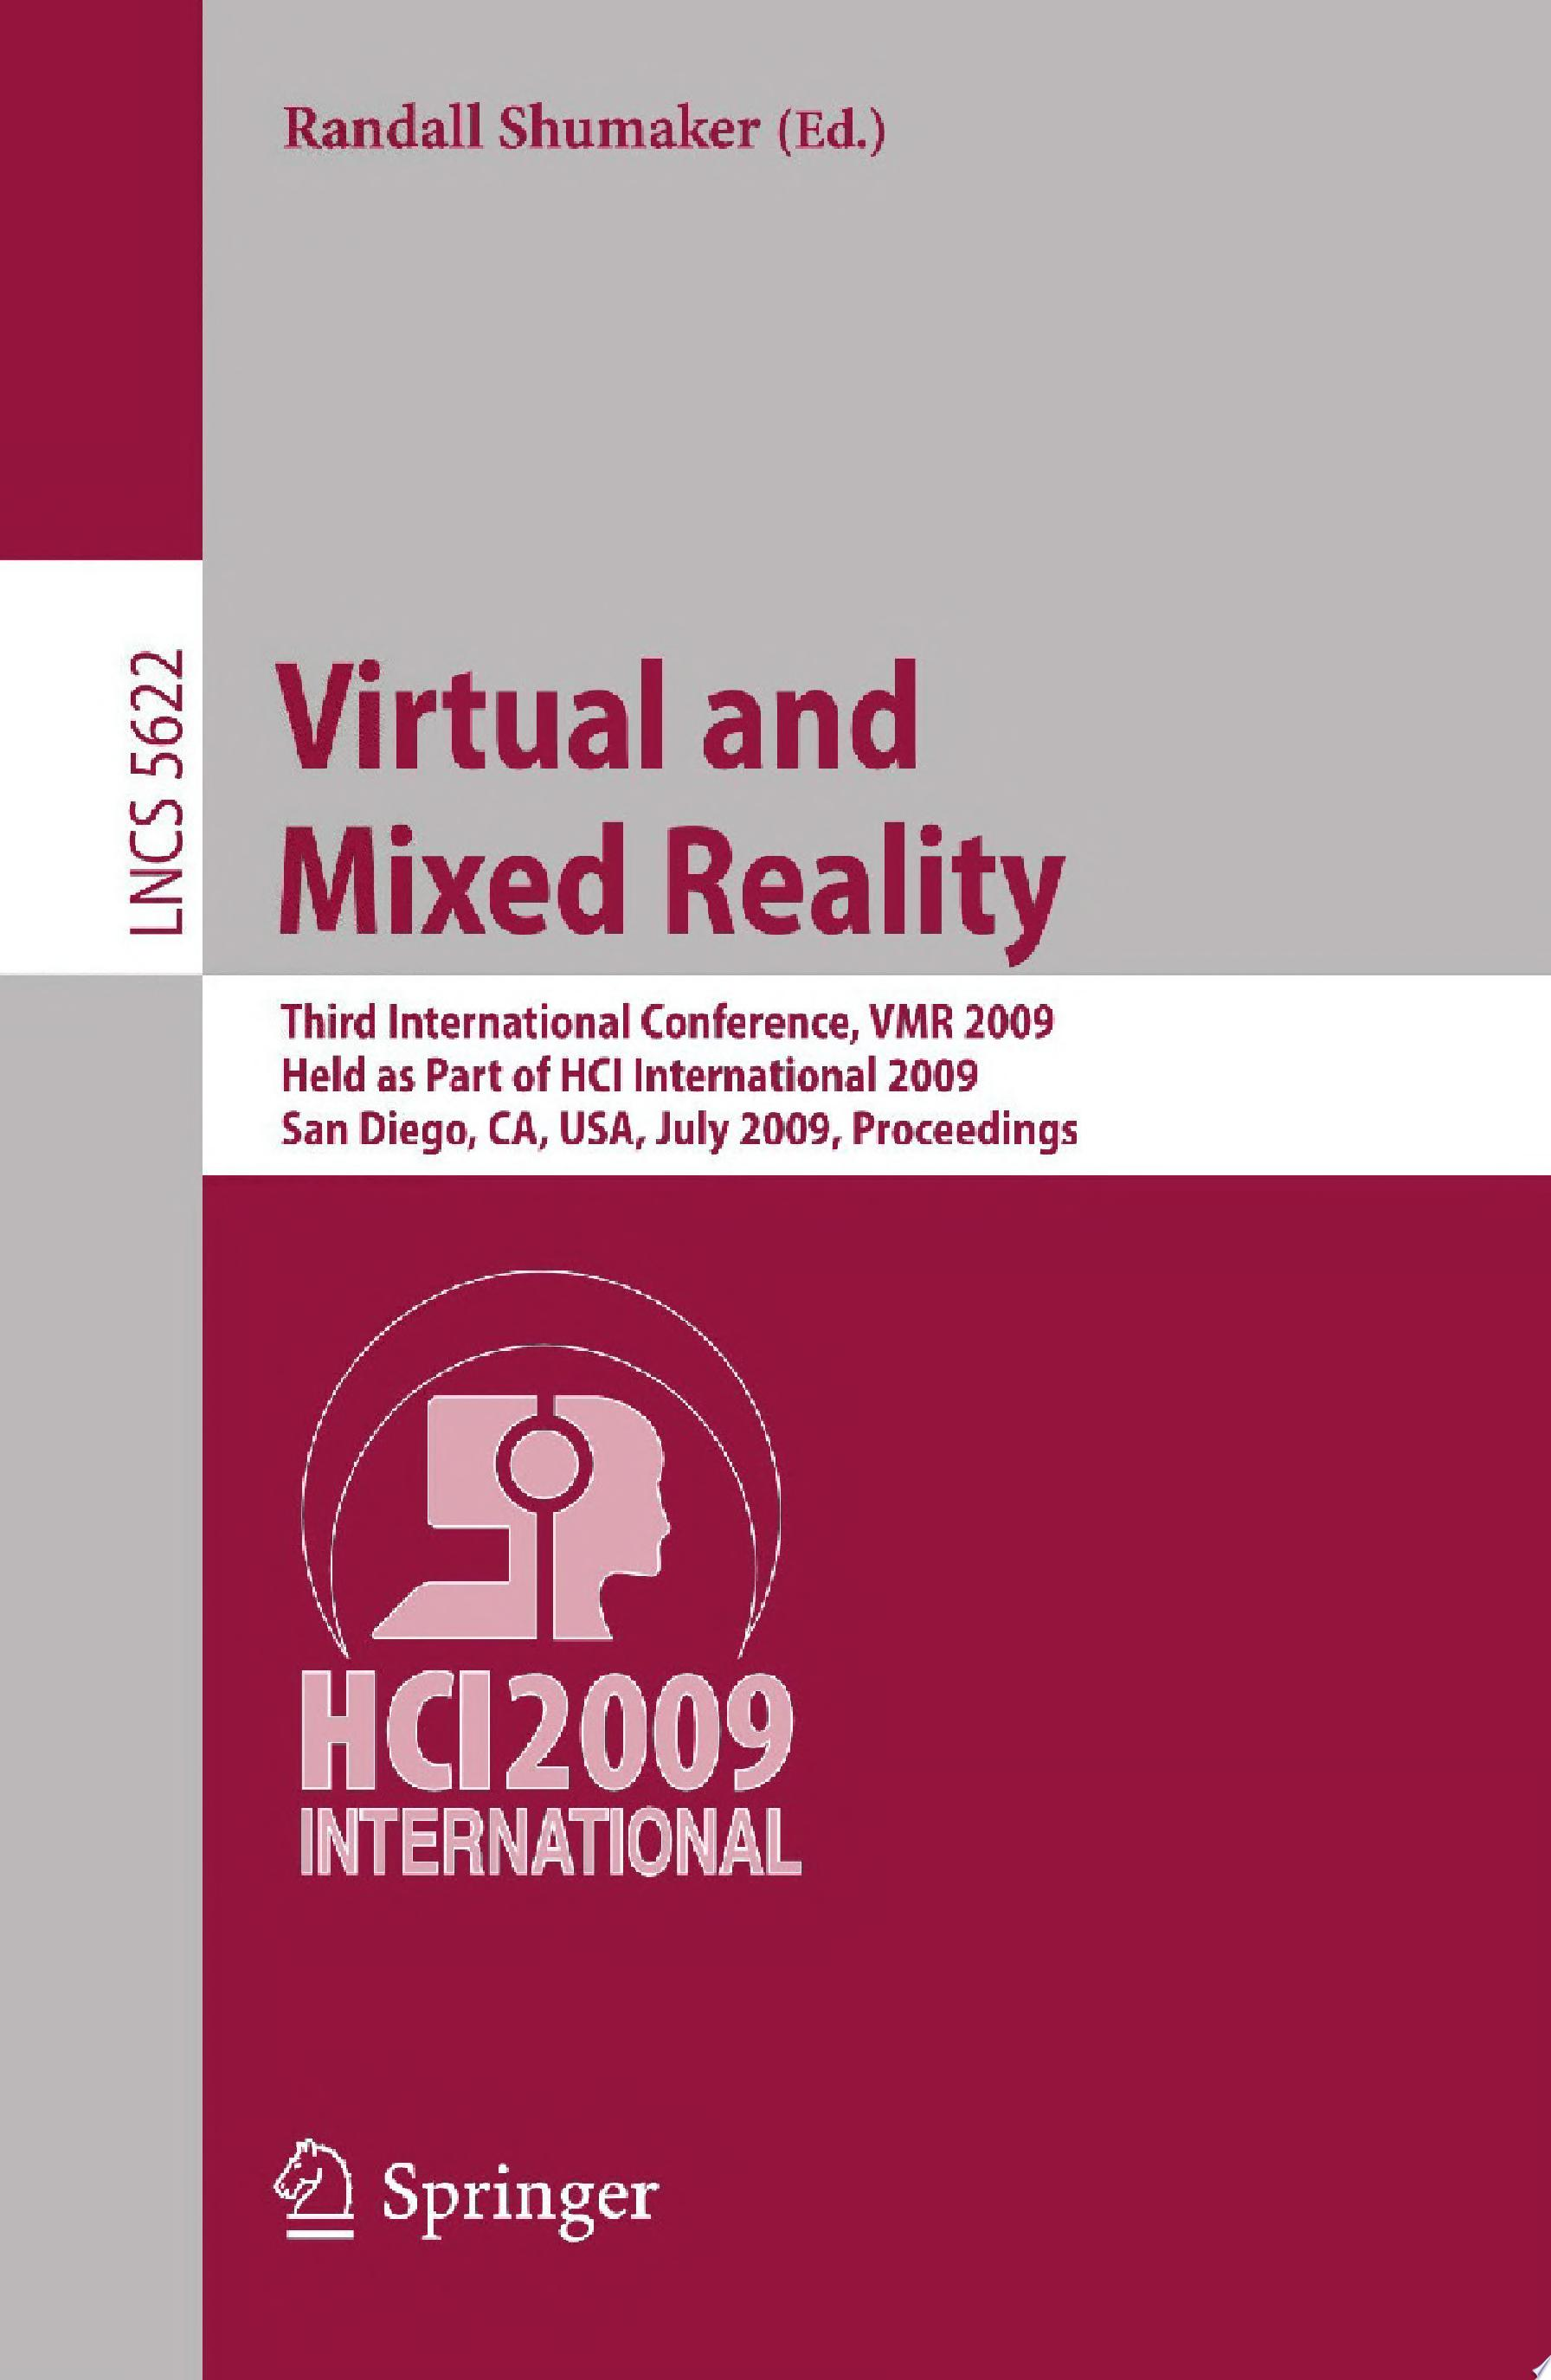 Virtual and Mixed Reality